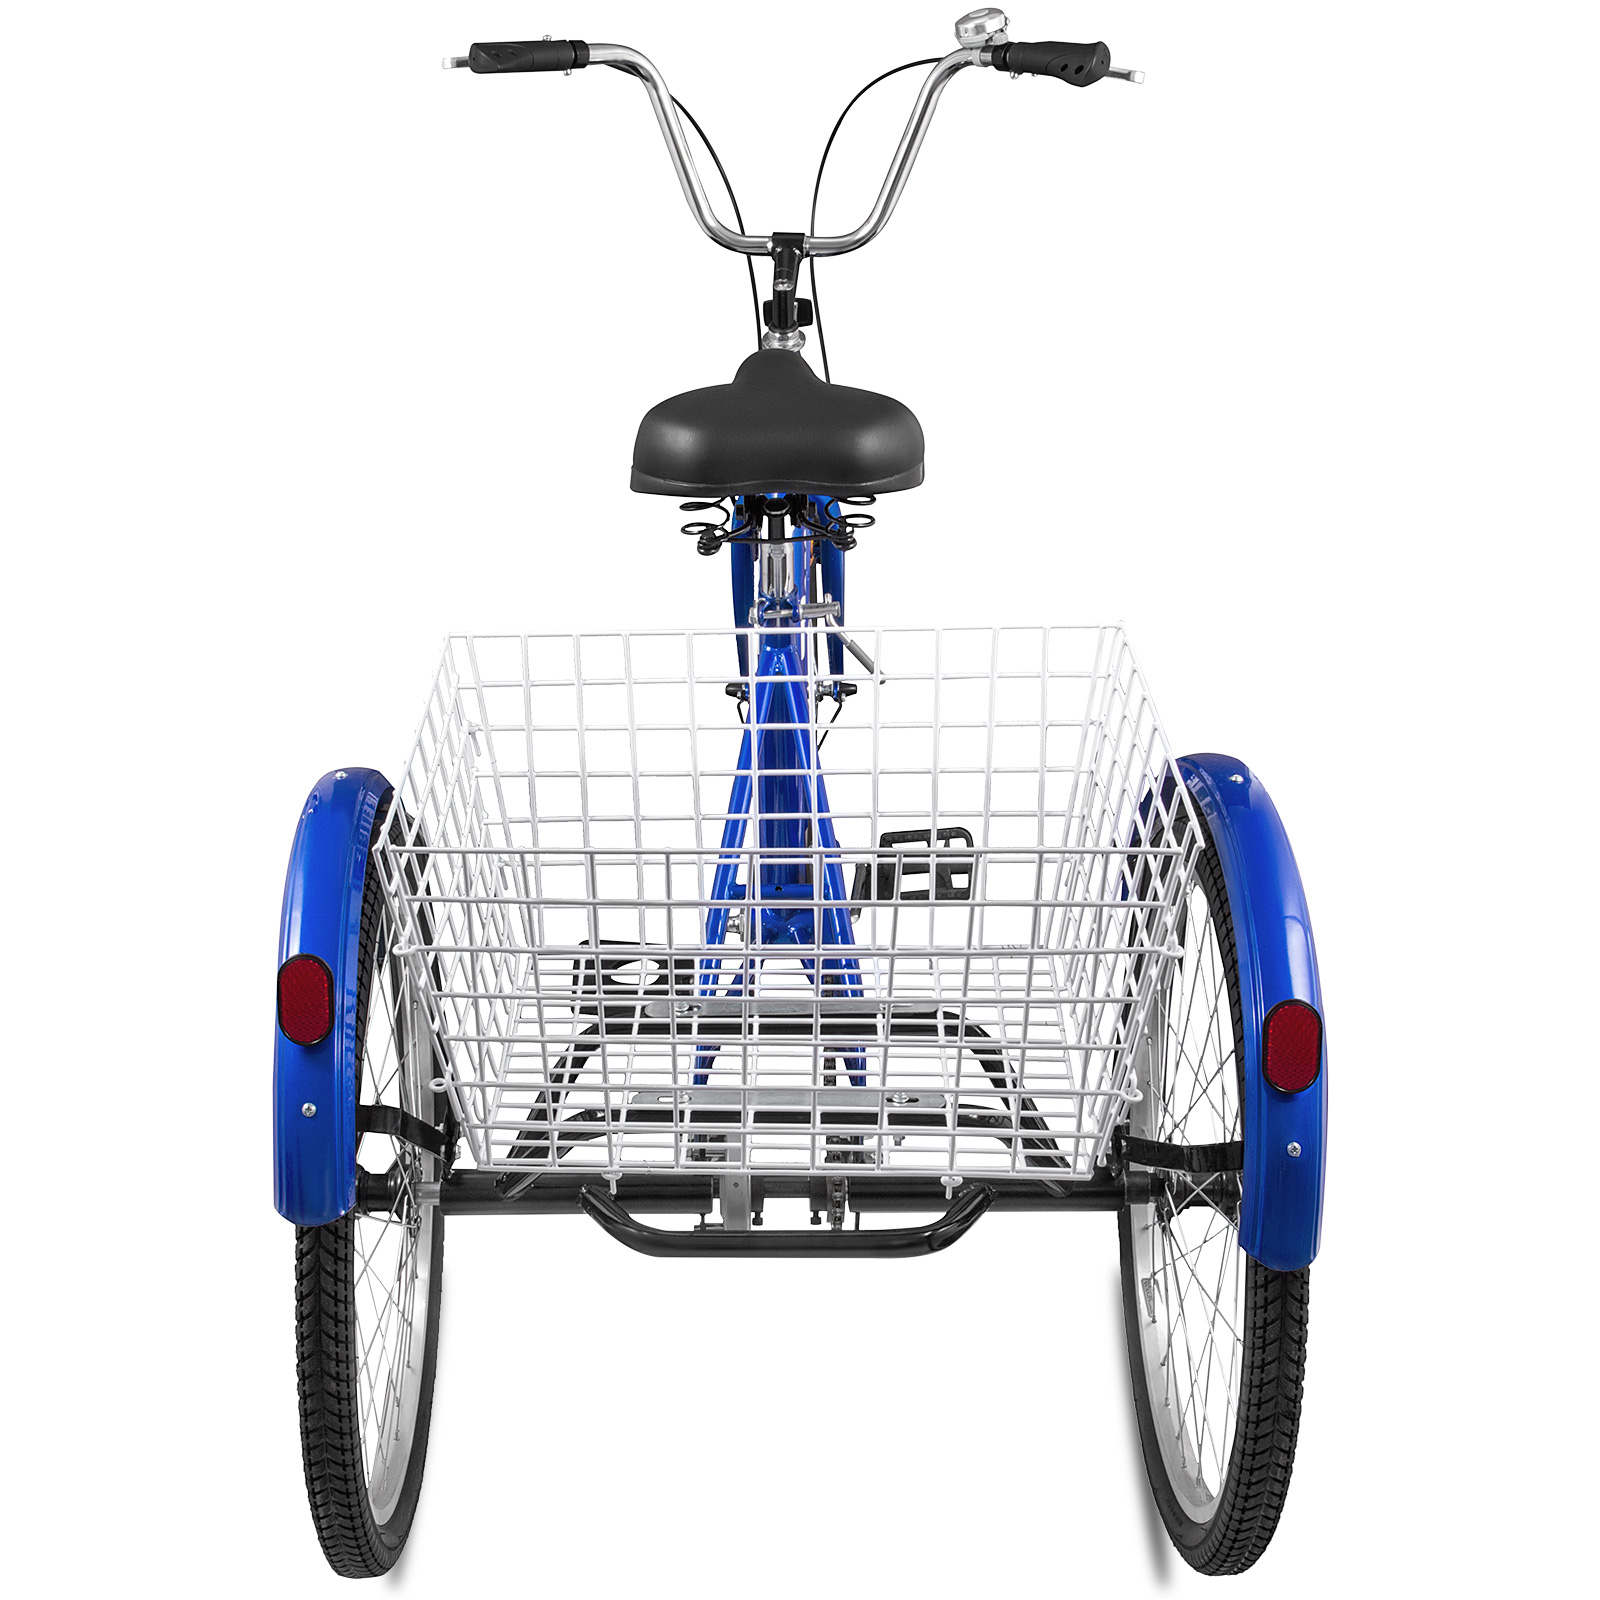 20-24-26-034-Adult-Tricycle-1-7-Speed-3-Wheel-Large-Basket-For-Shopping-Optional thumbnail 156